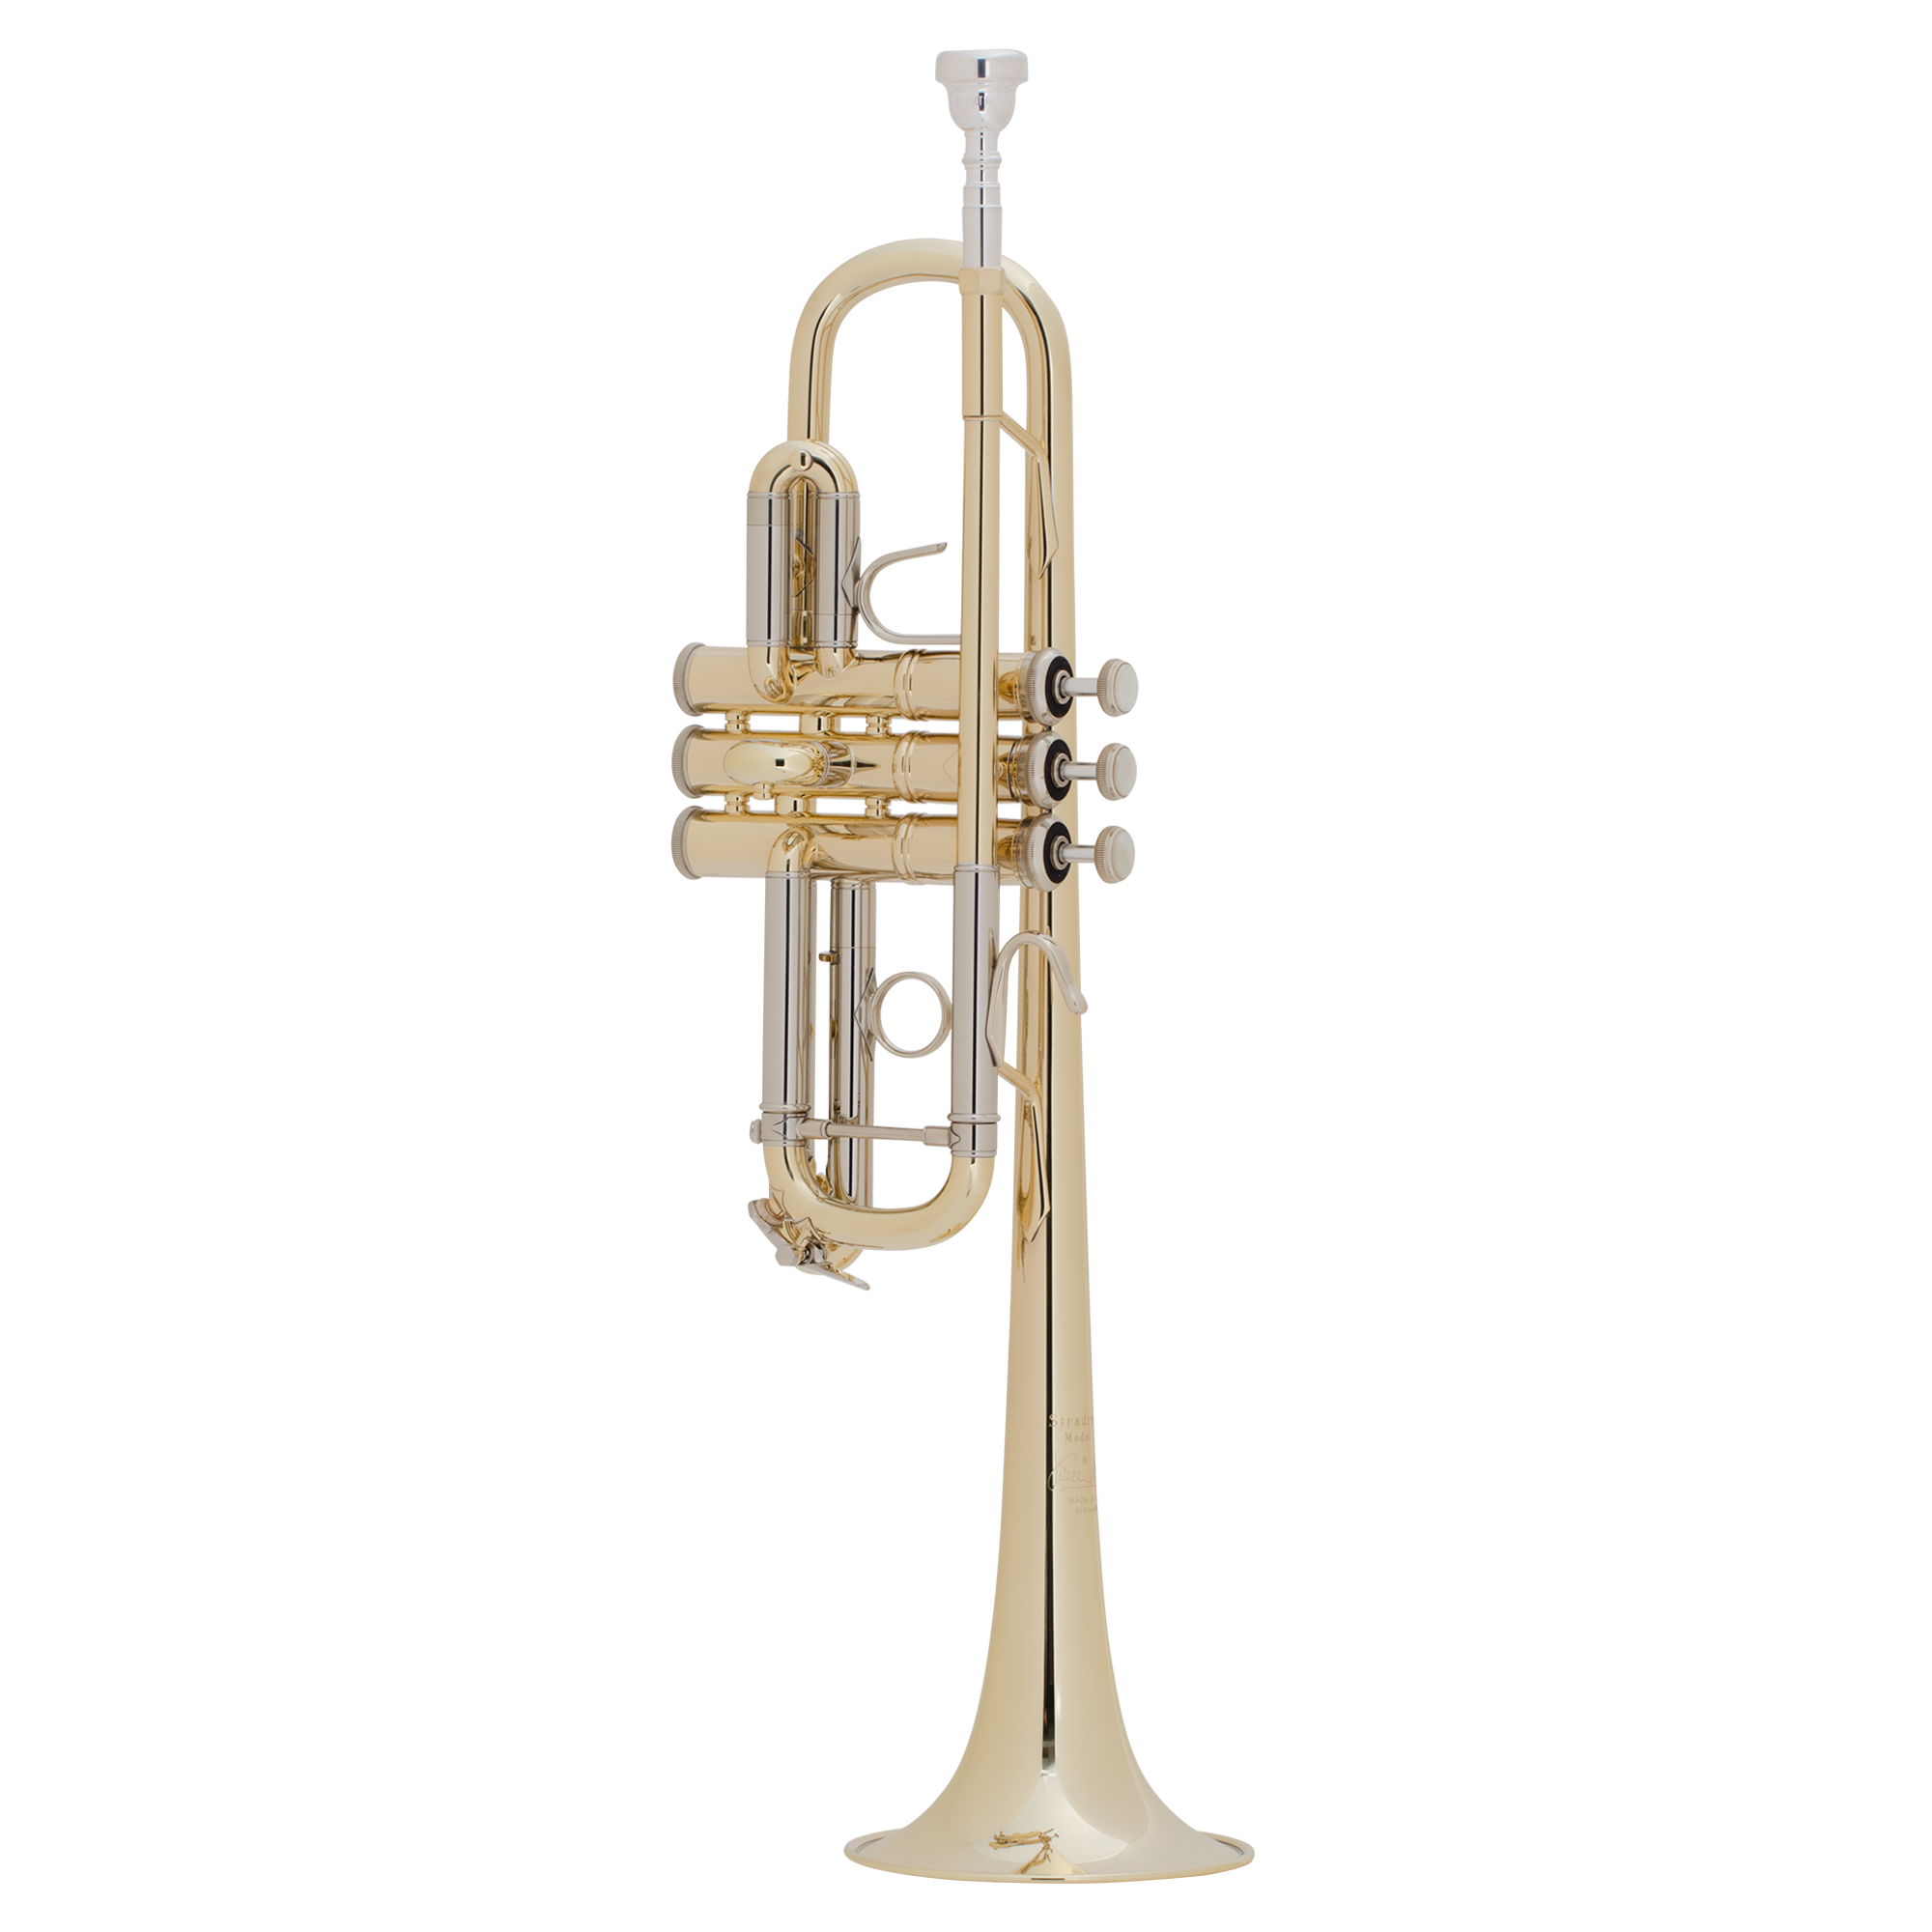 Bach - Model C180L239 Stradivarius - C Trumpet-Trumpet-Bach-Music Elements